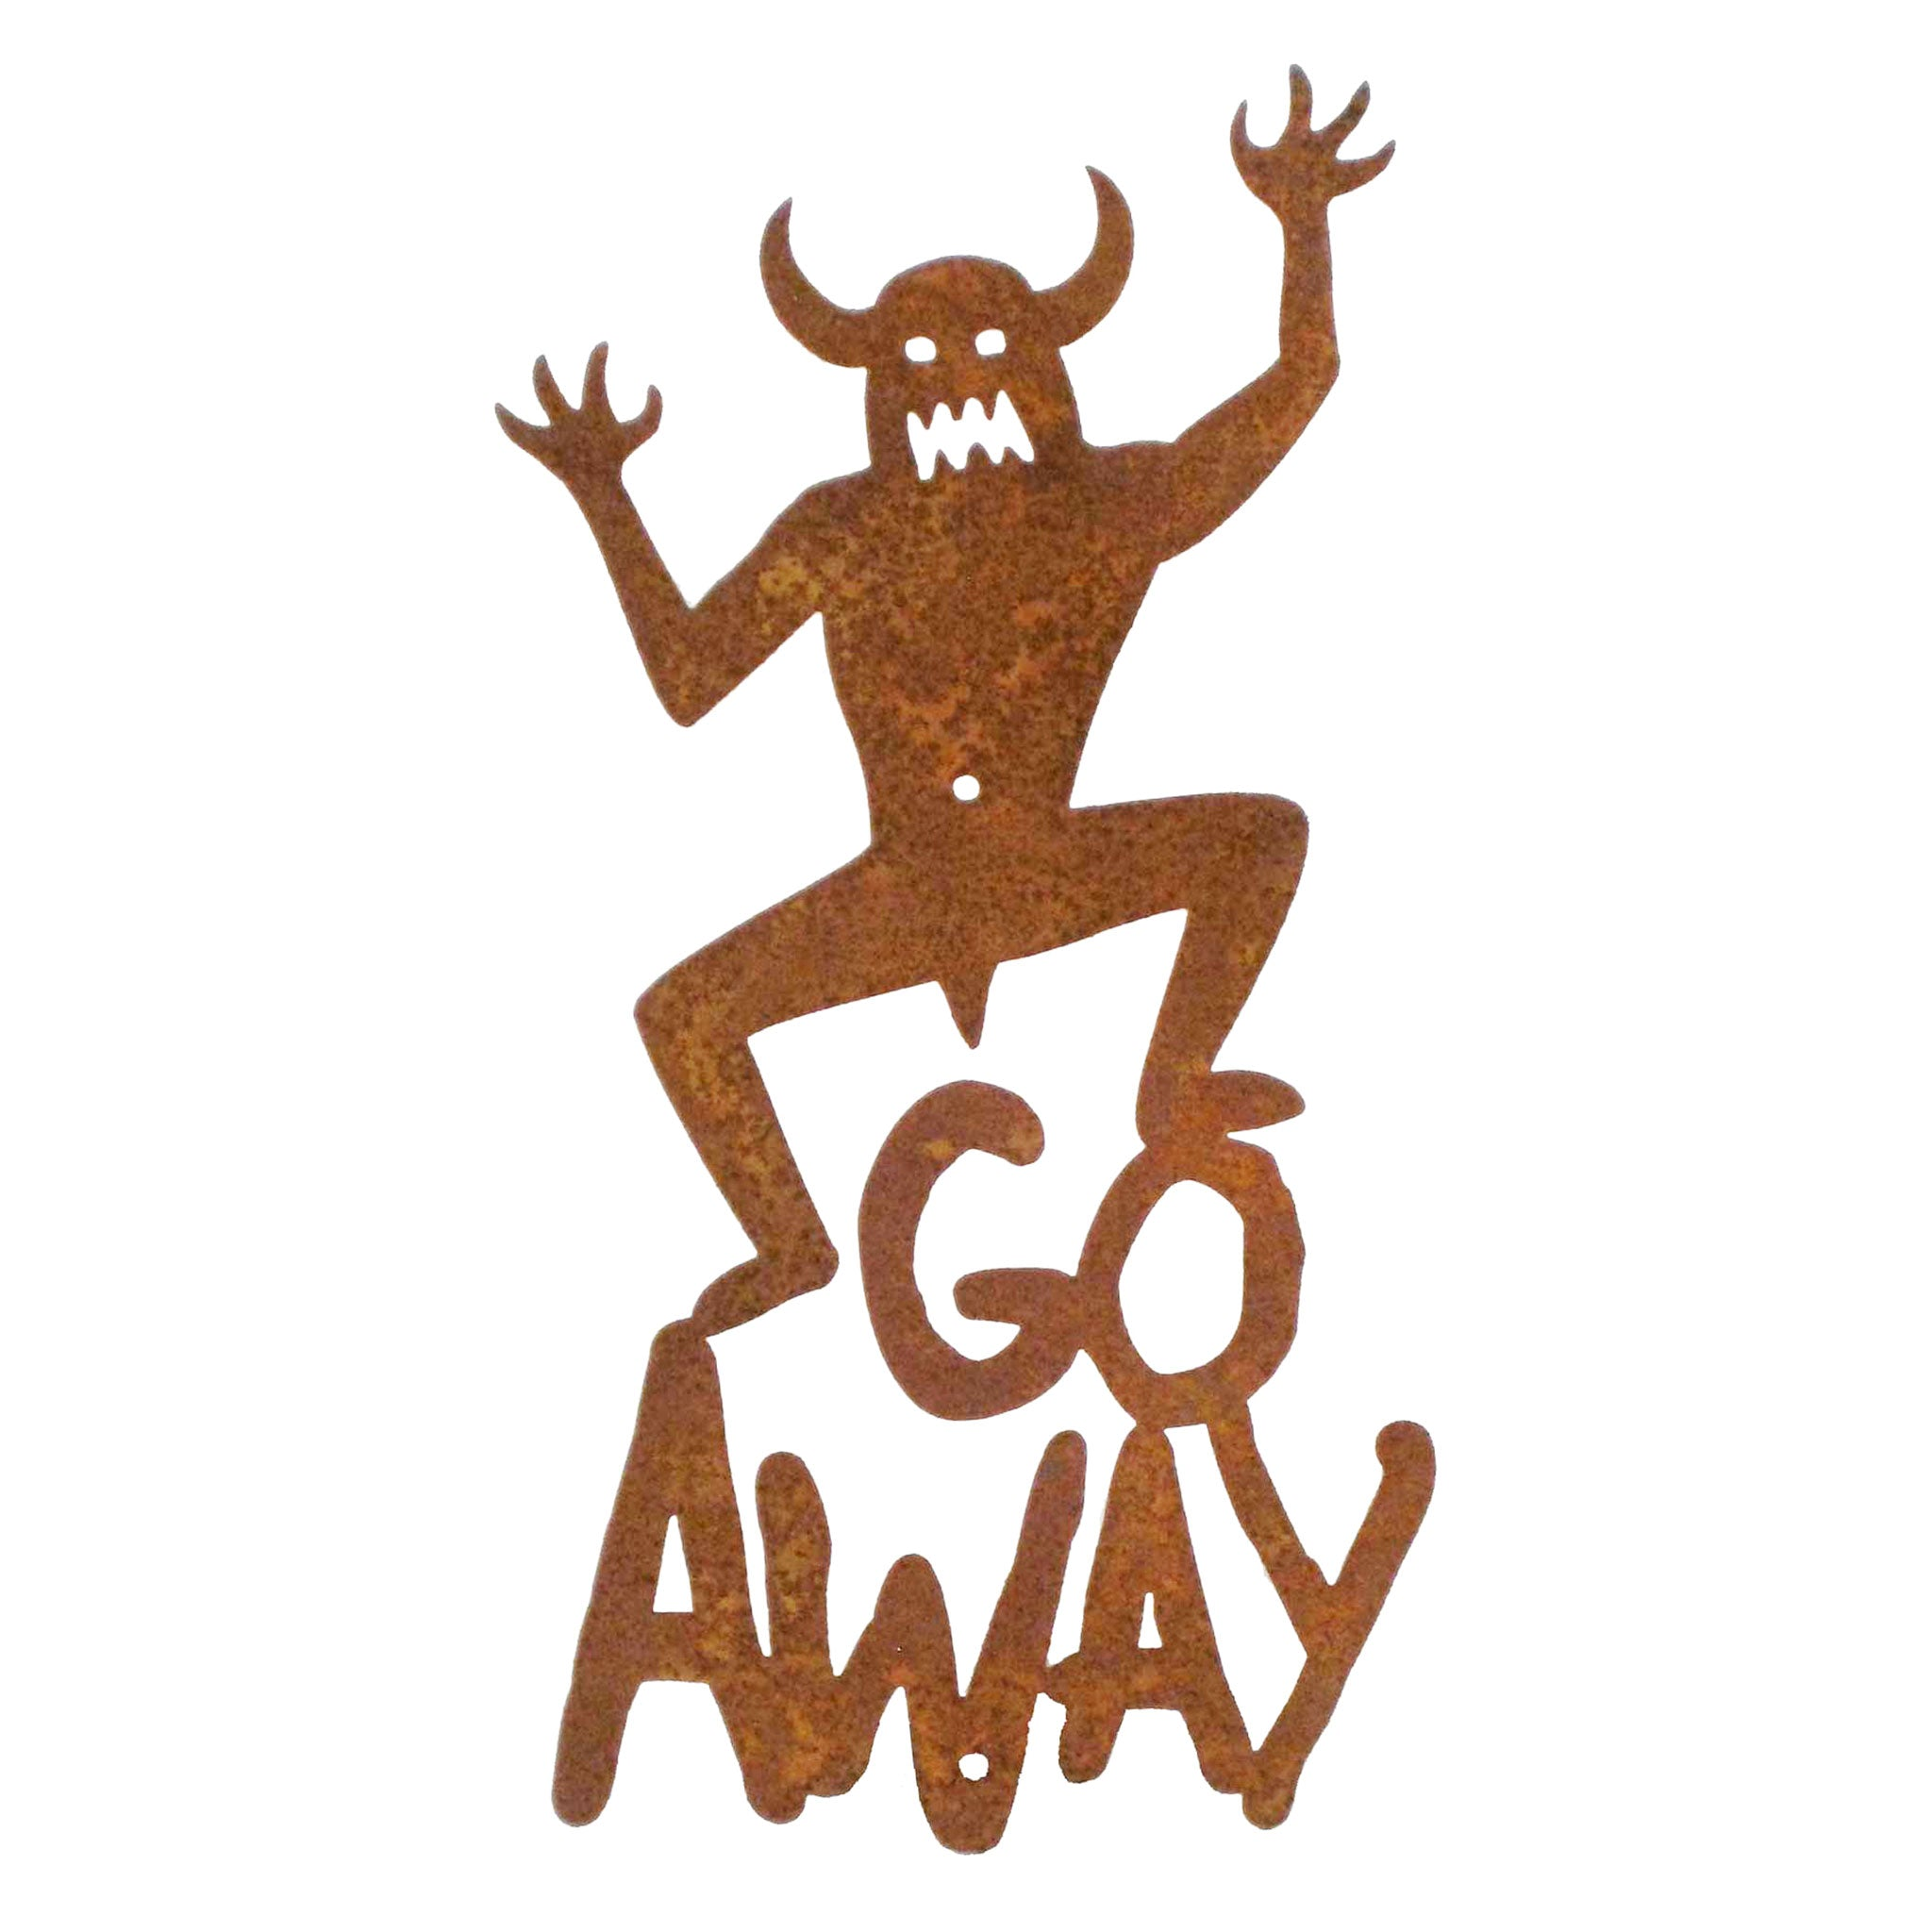 Go Away Wall Mount Sign